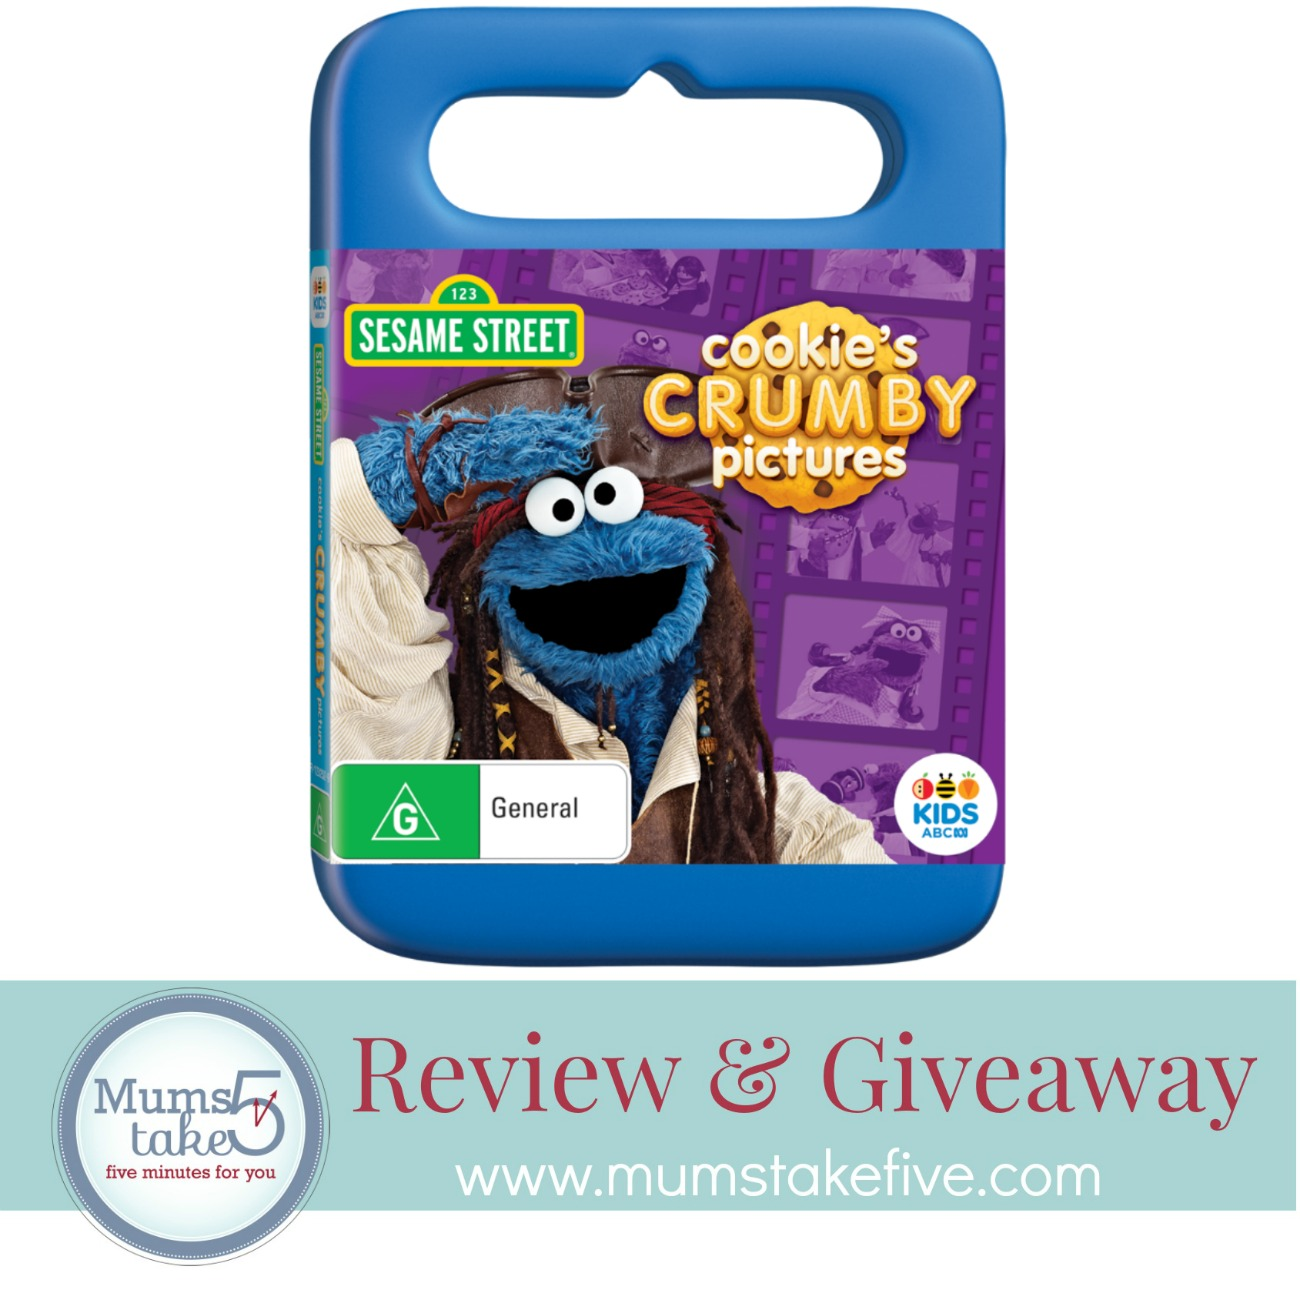 Cookies Crumby Pictures DVD Giveaway